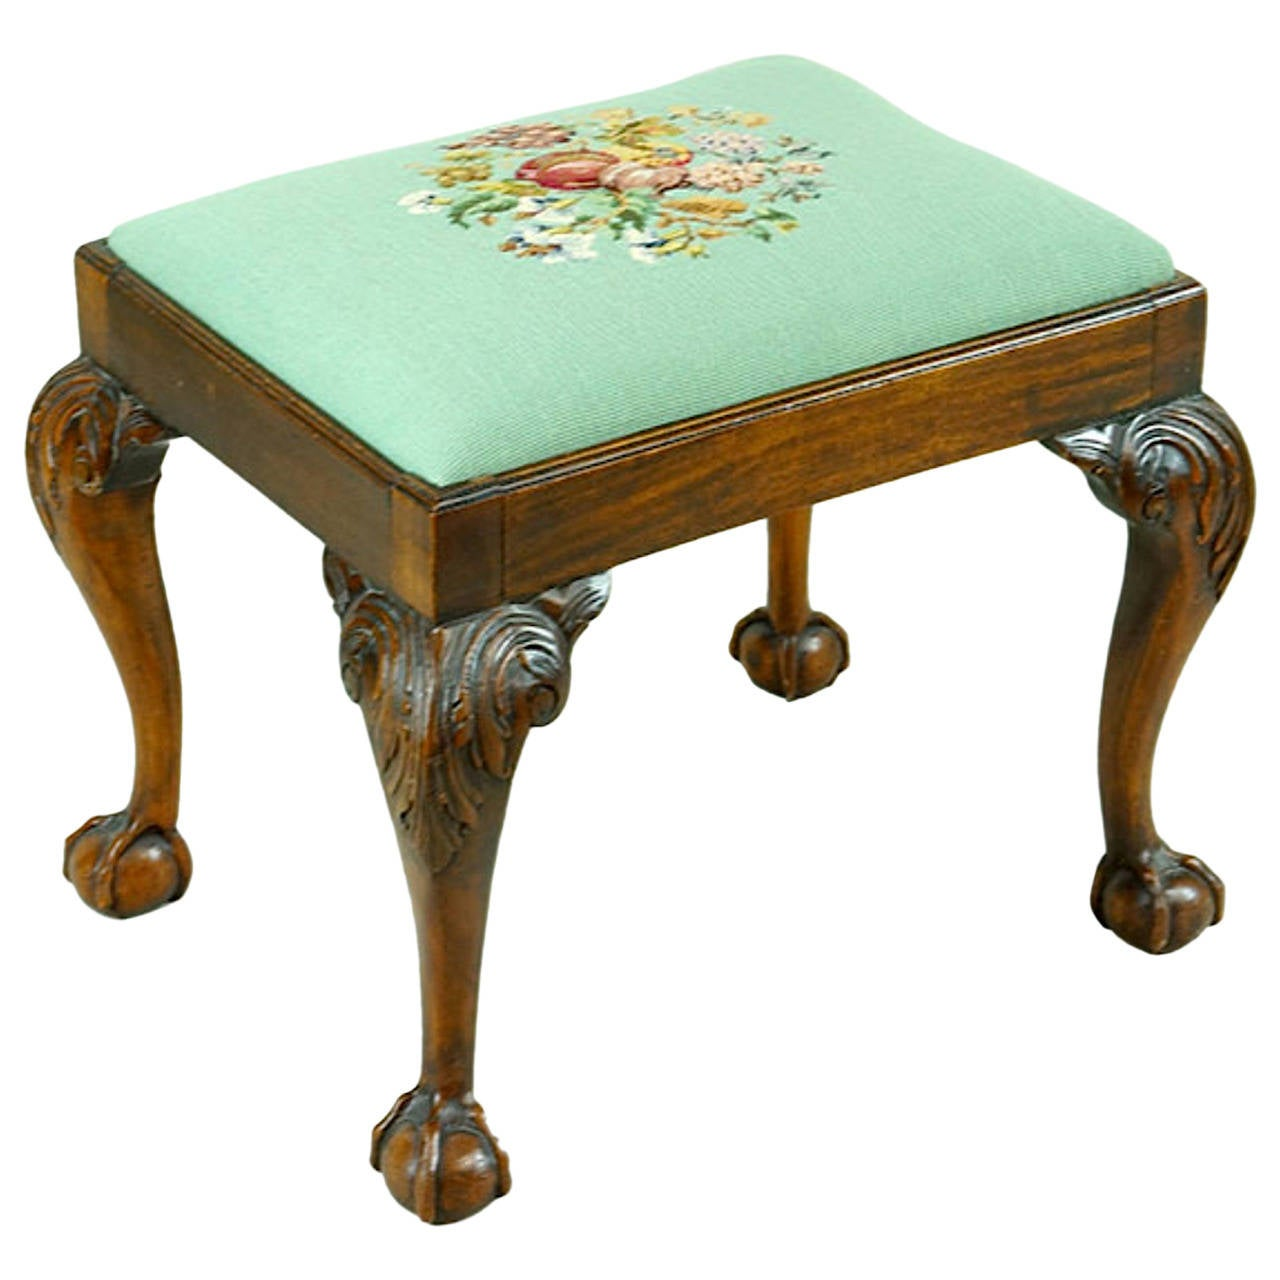 19th Century English George III Stool with Carved Cabriol Legs